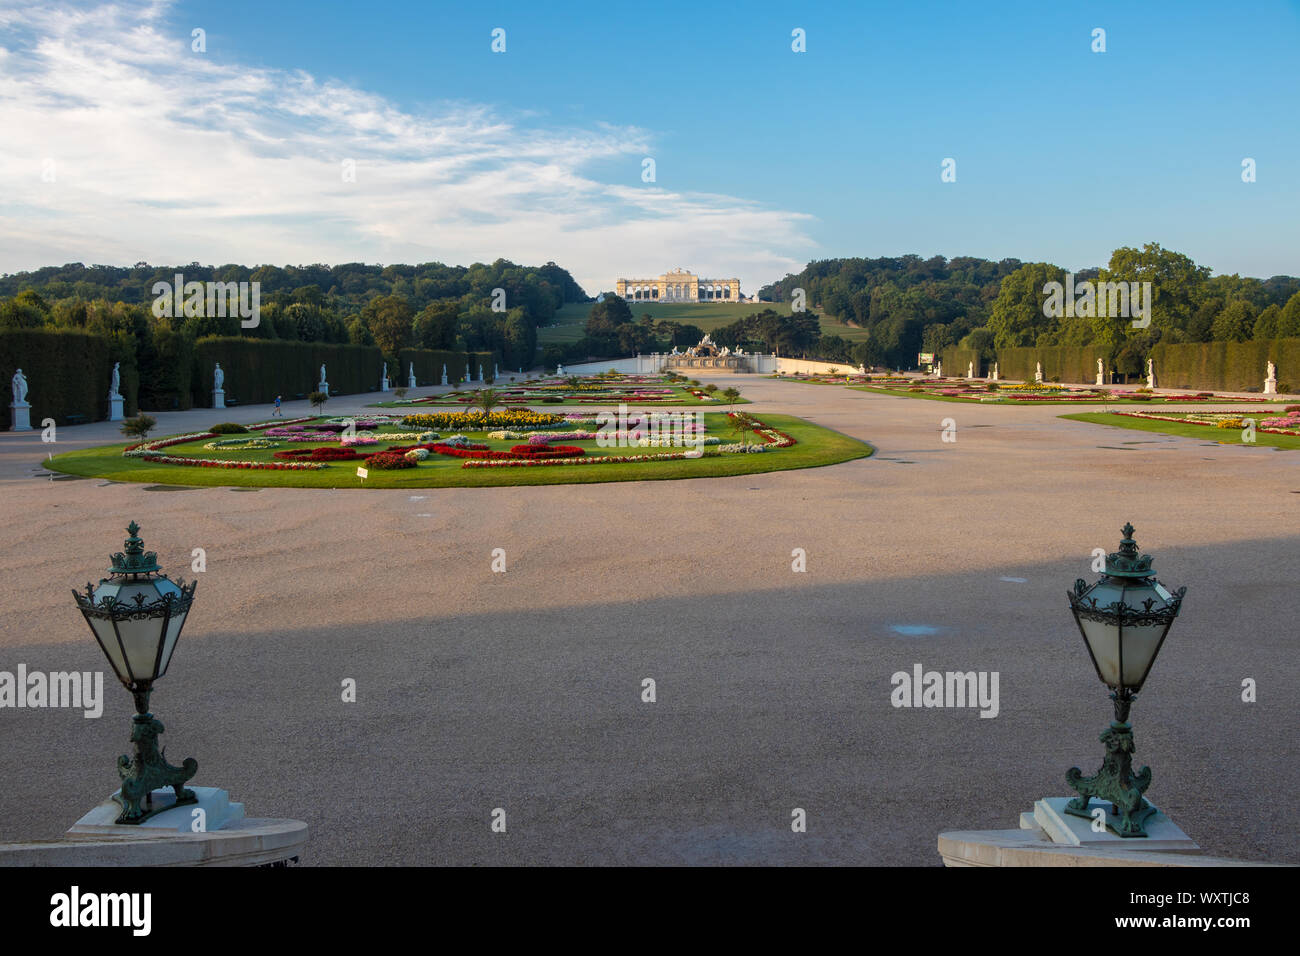 Vienna, Austria - September 3, 2019: Schönbrunn Palace and garden with colorful flowers. The photo was taken early in the morning. Warm colors thanks Stock Photo